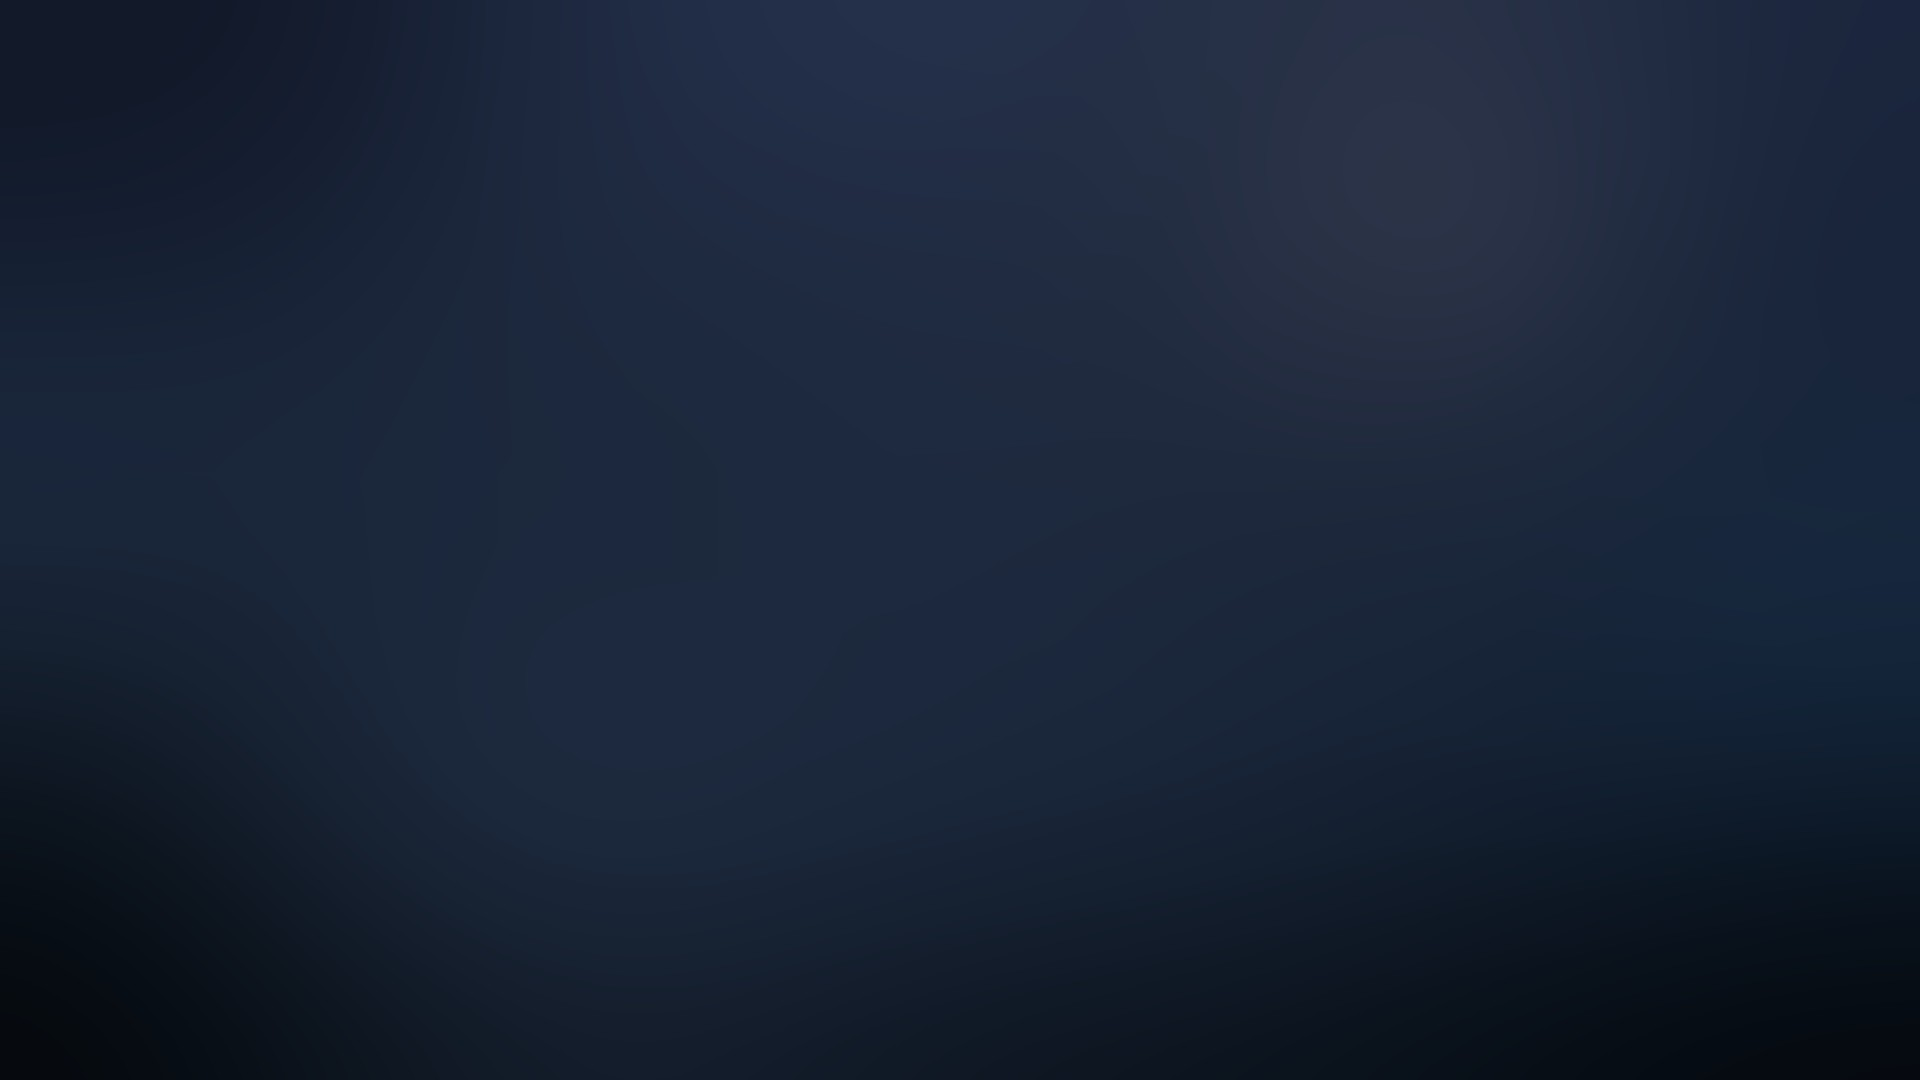 Black gradient background ·① Download free HD backgrounds ...